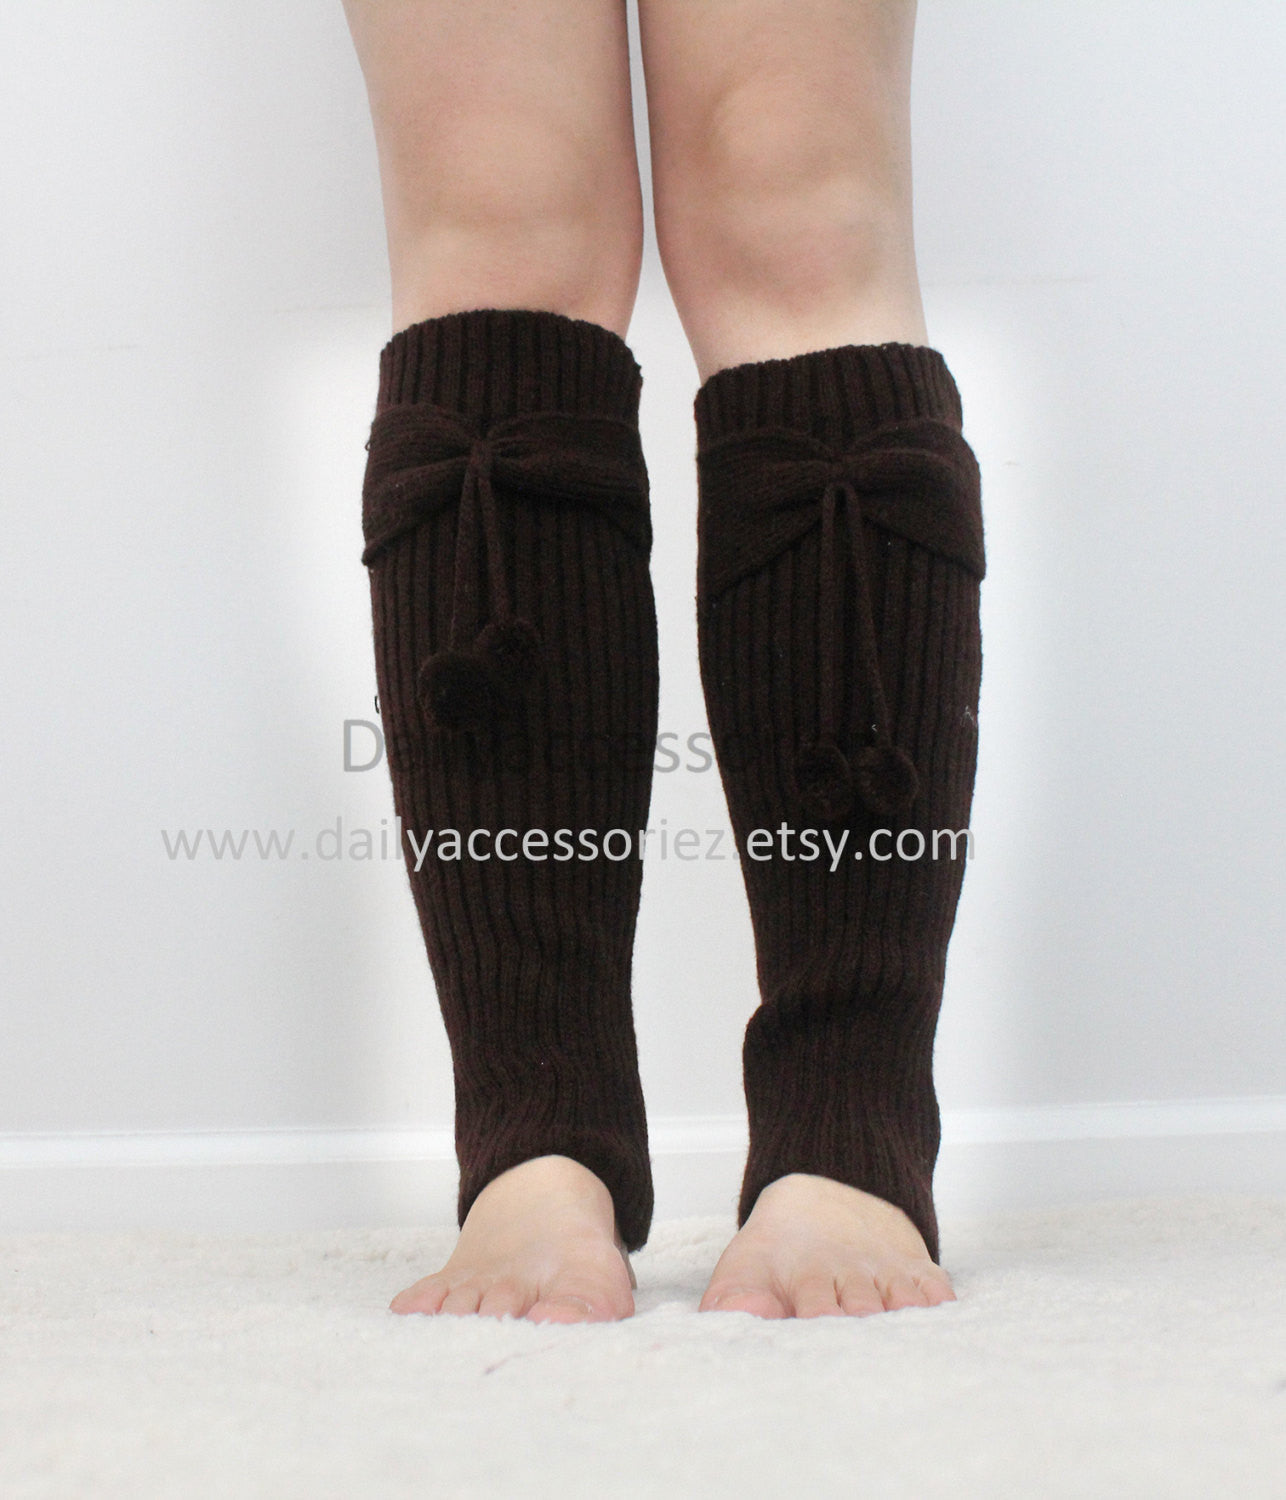 Brown knit leg warmers - Bean Concept - Etsy